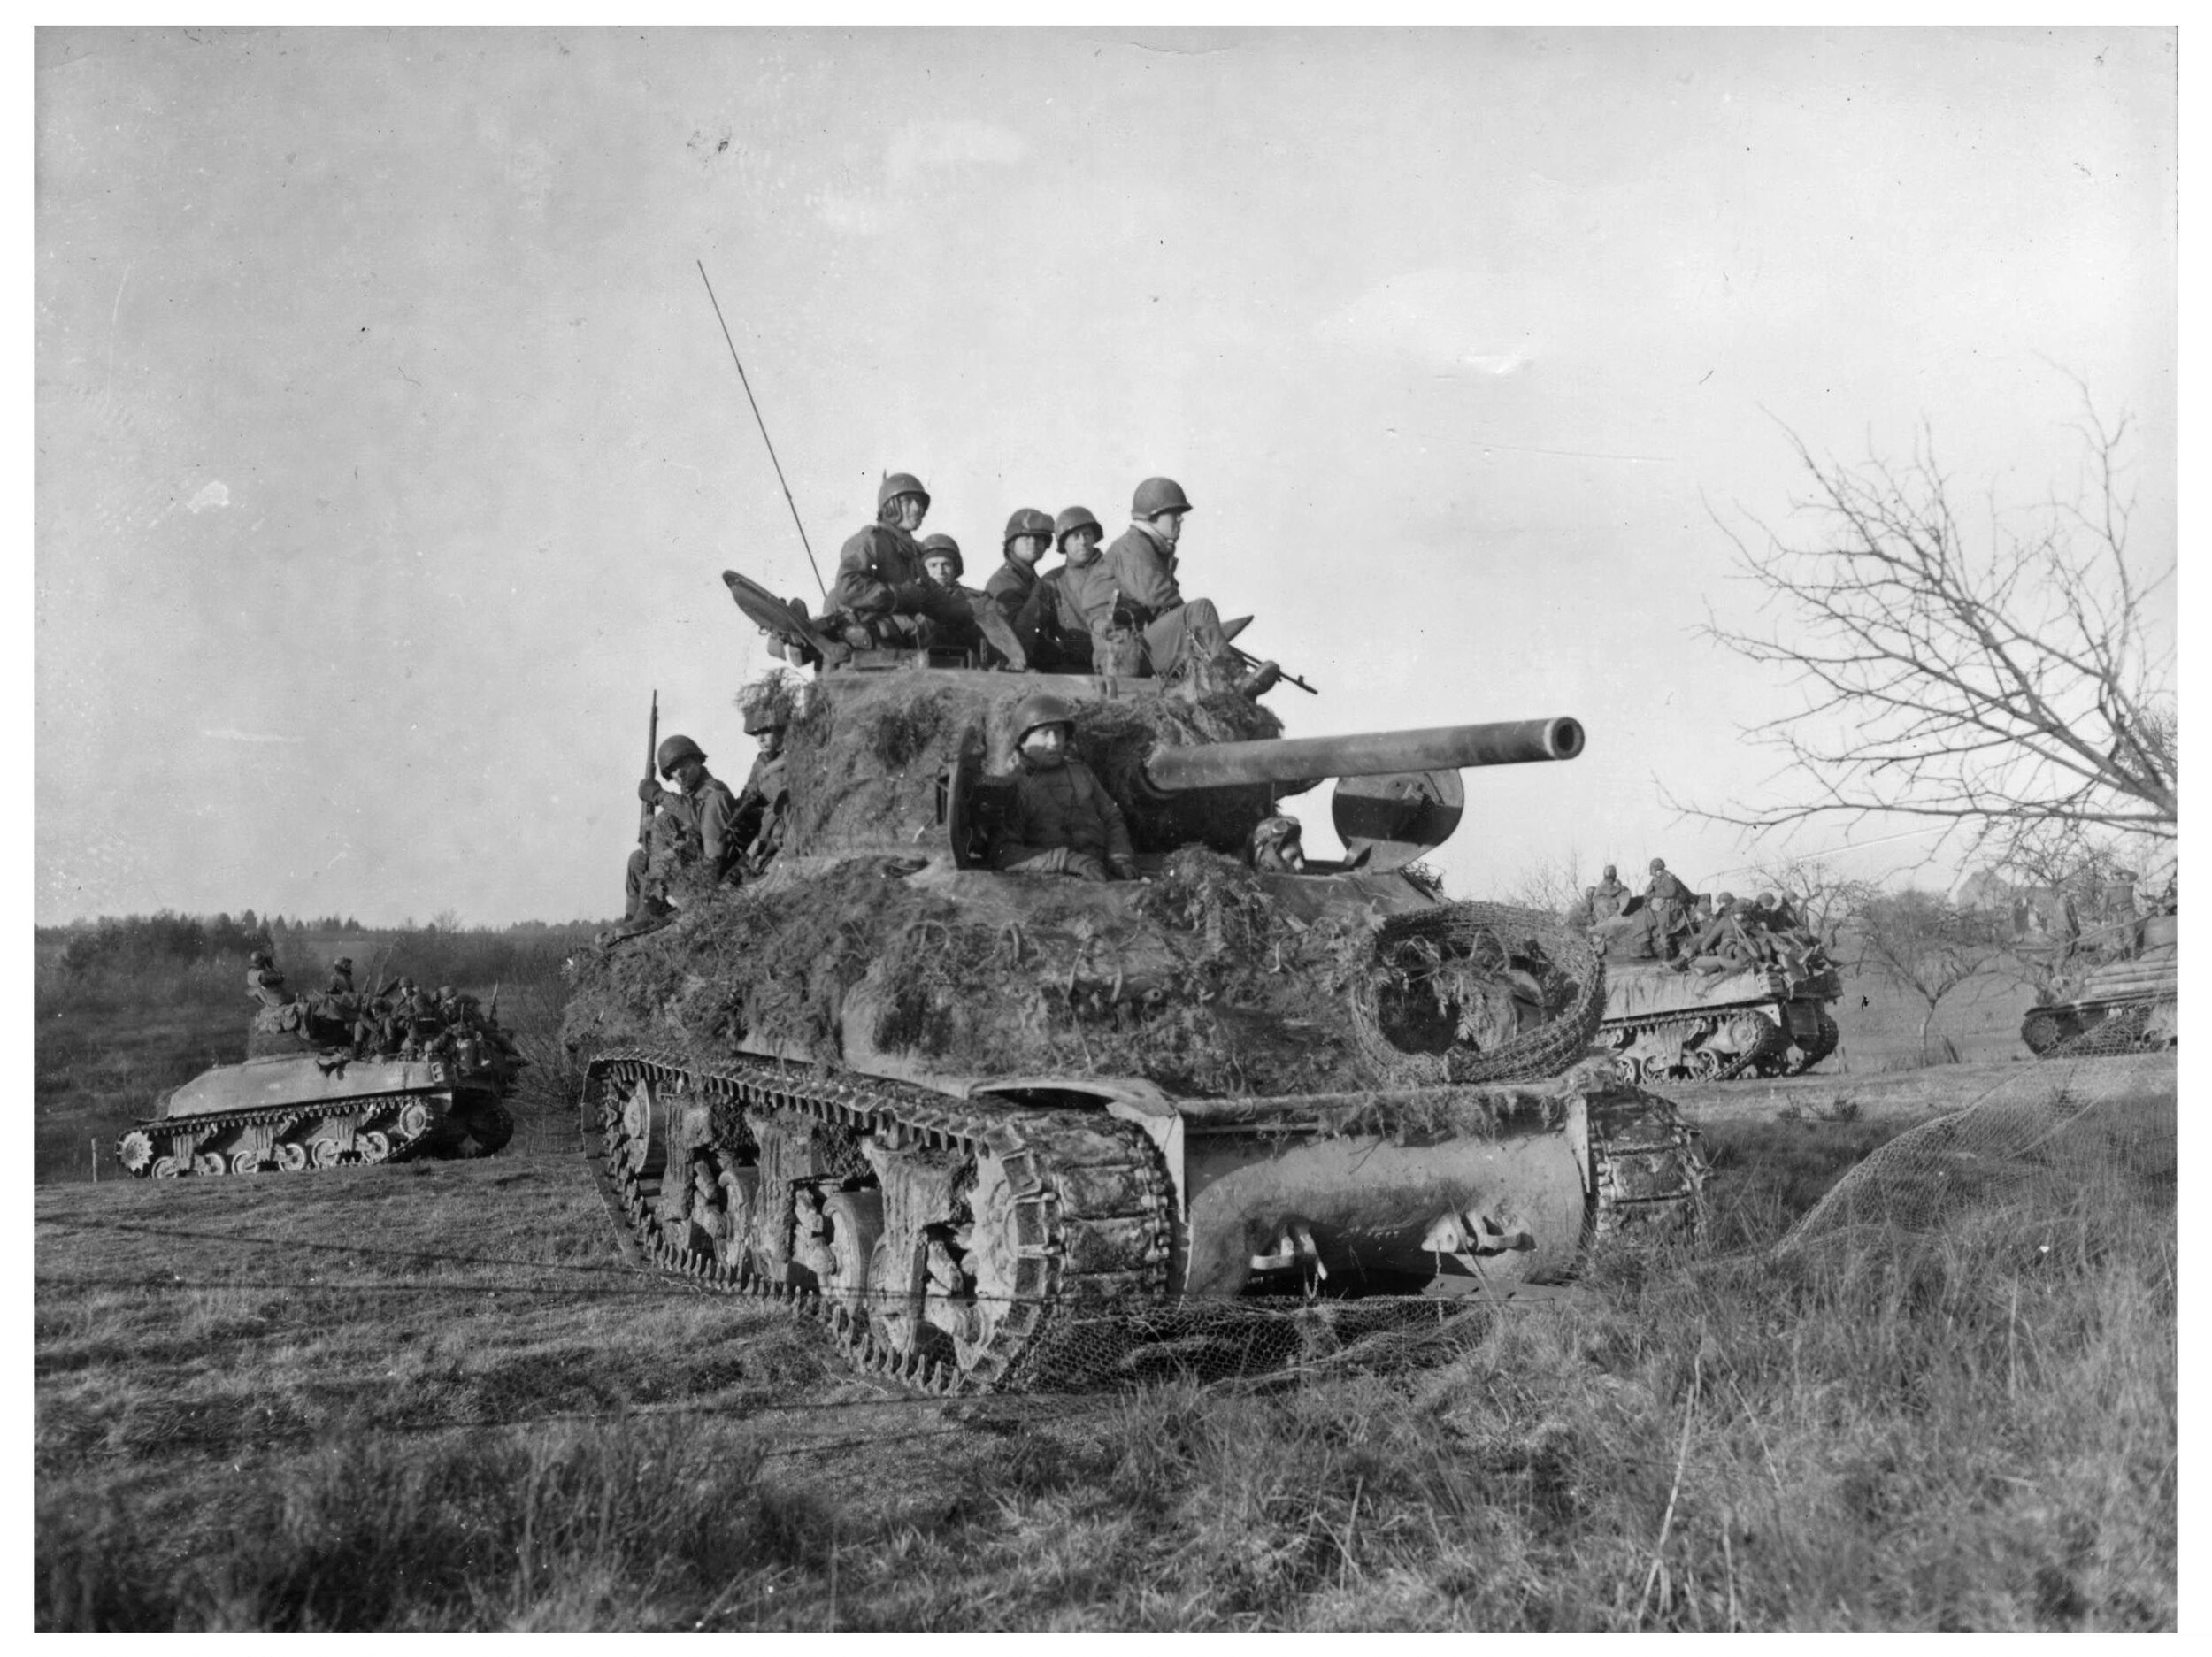 2AD M4A1 (76)W carrying troops of 291st INF RGT, 75th ID, 27 Dec 1944.SIGNAL CORPS photo # 198343.jpg